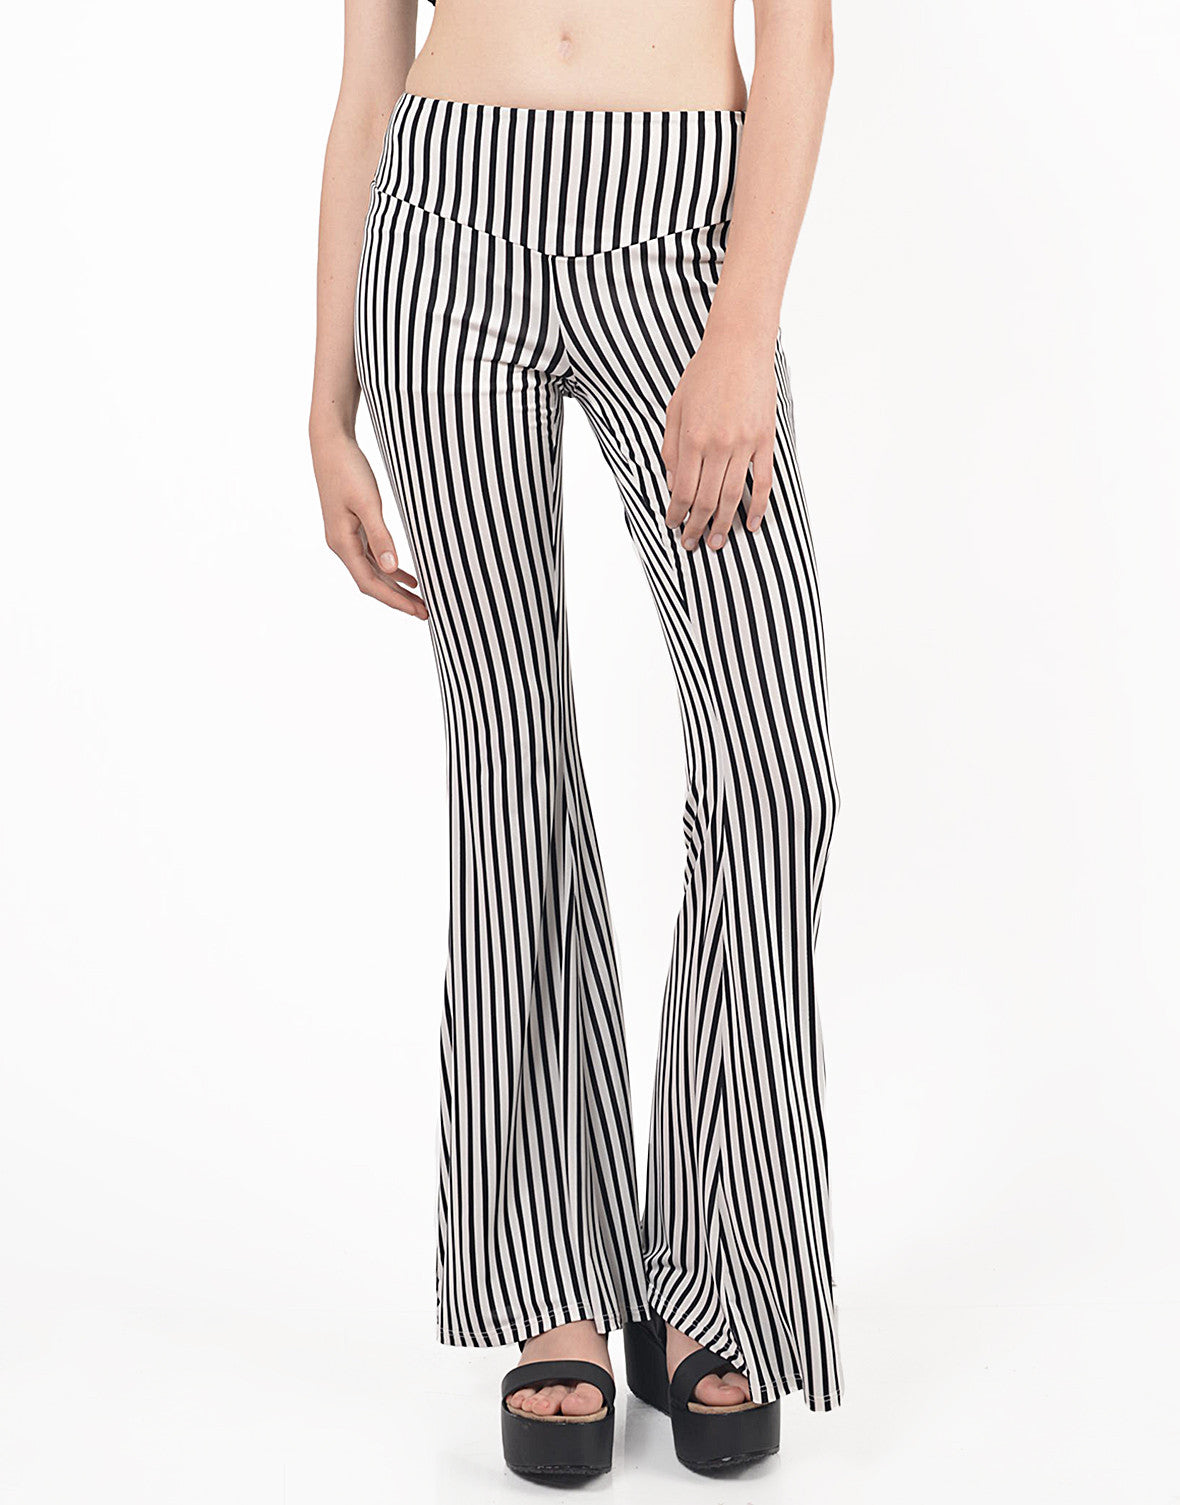 Detail of Striped Flare Pants